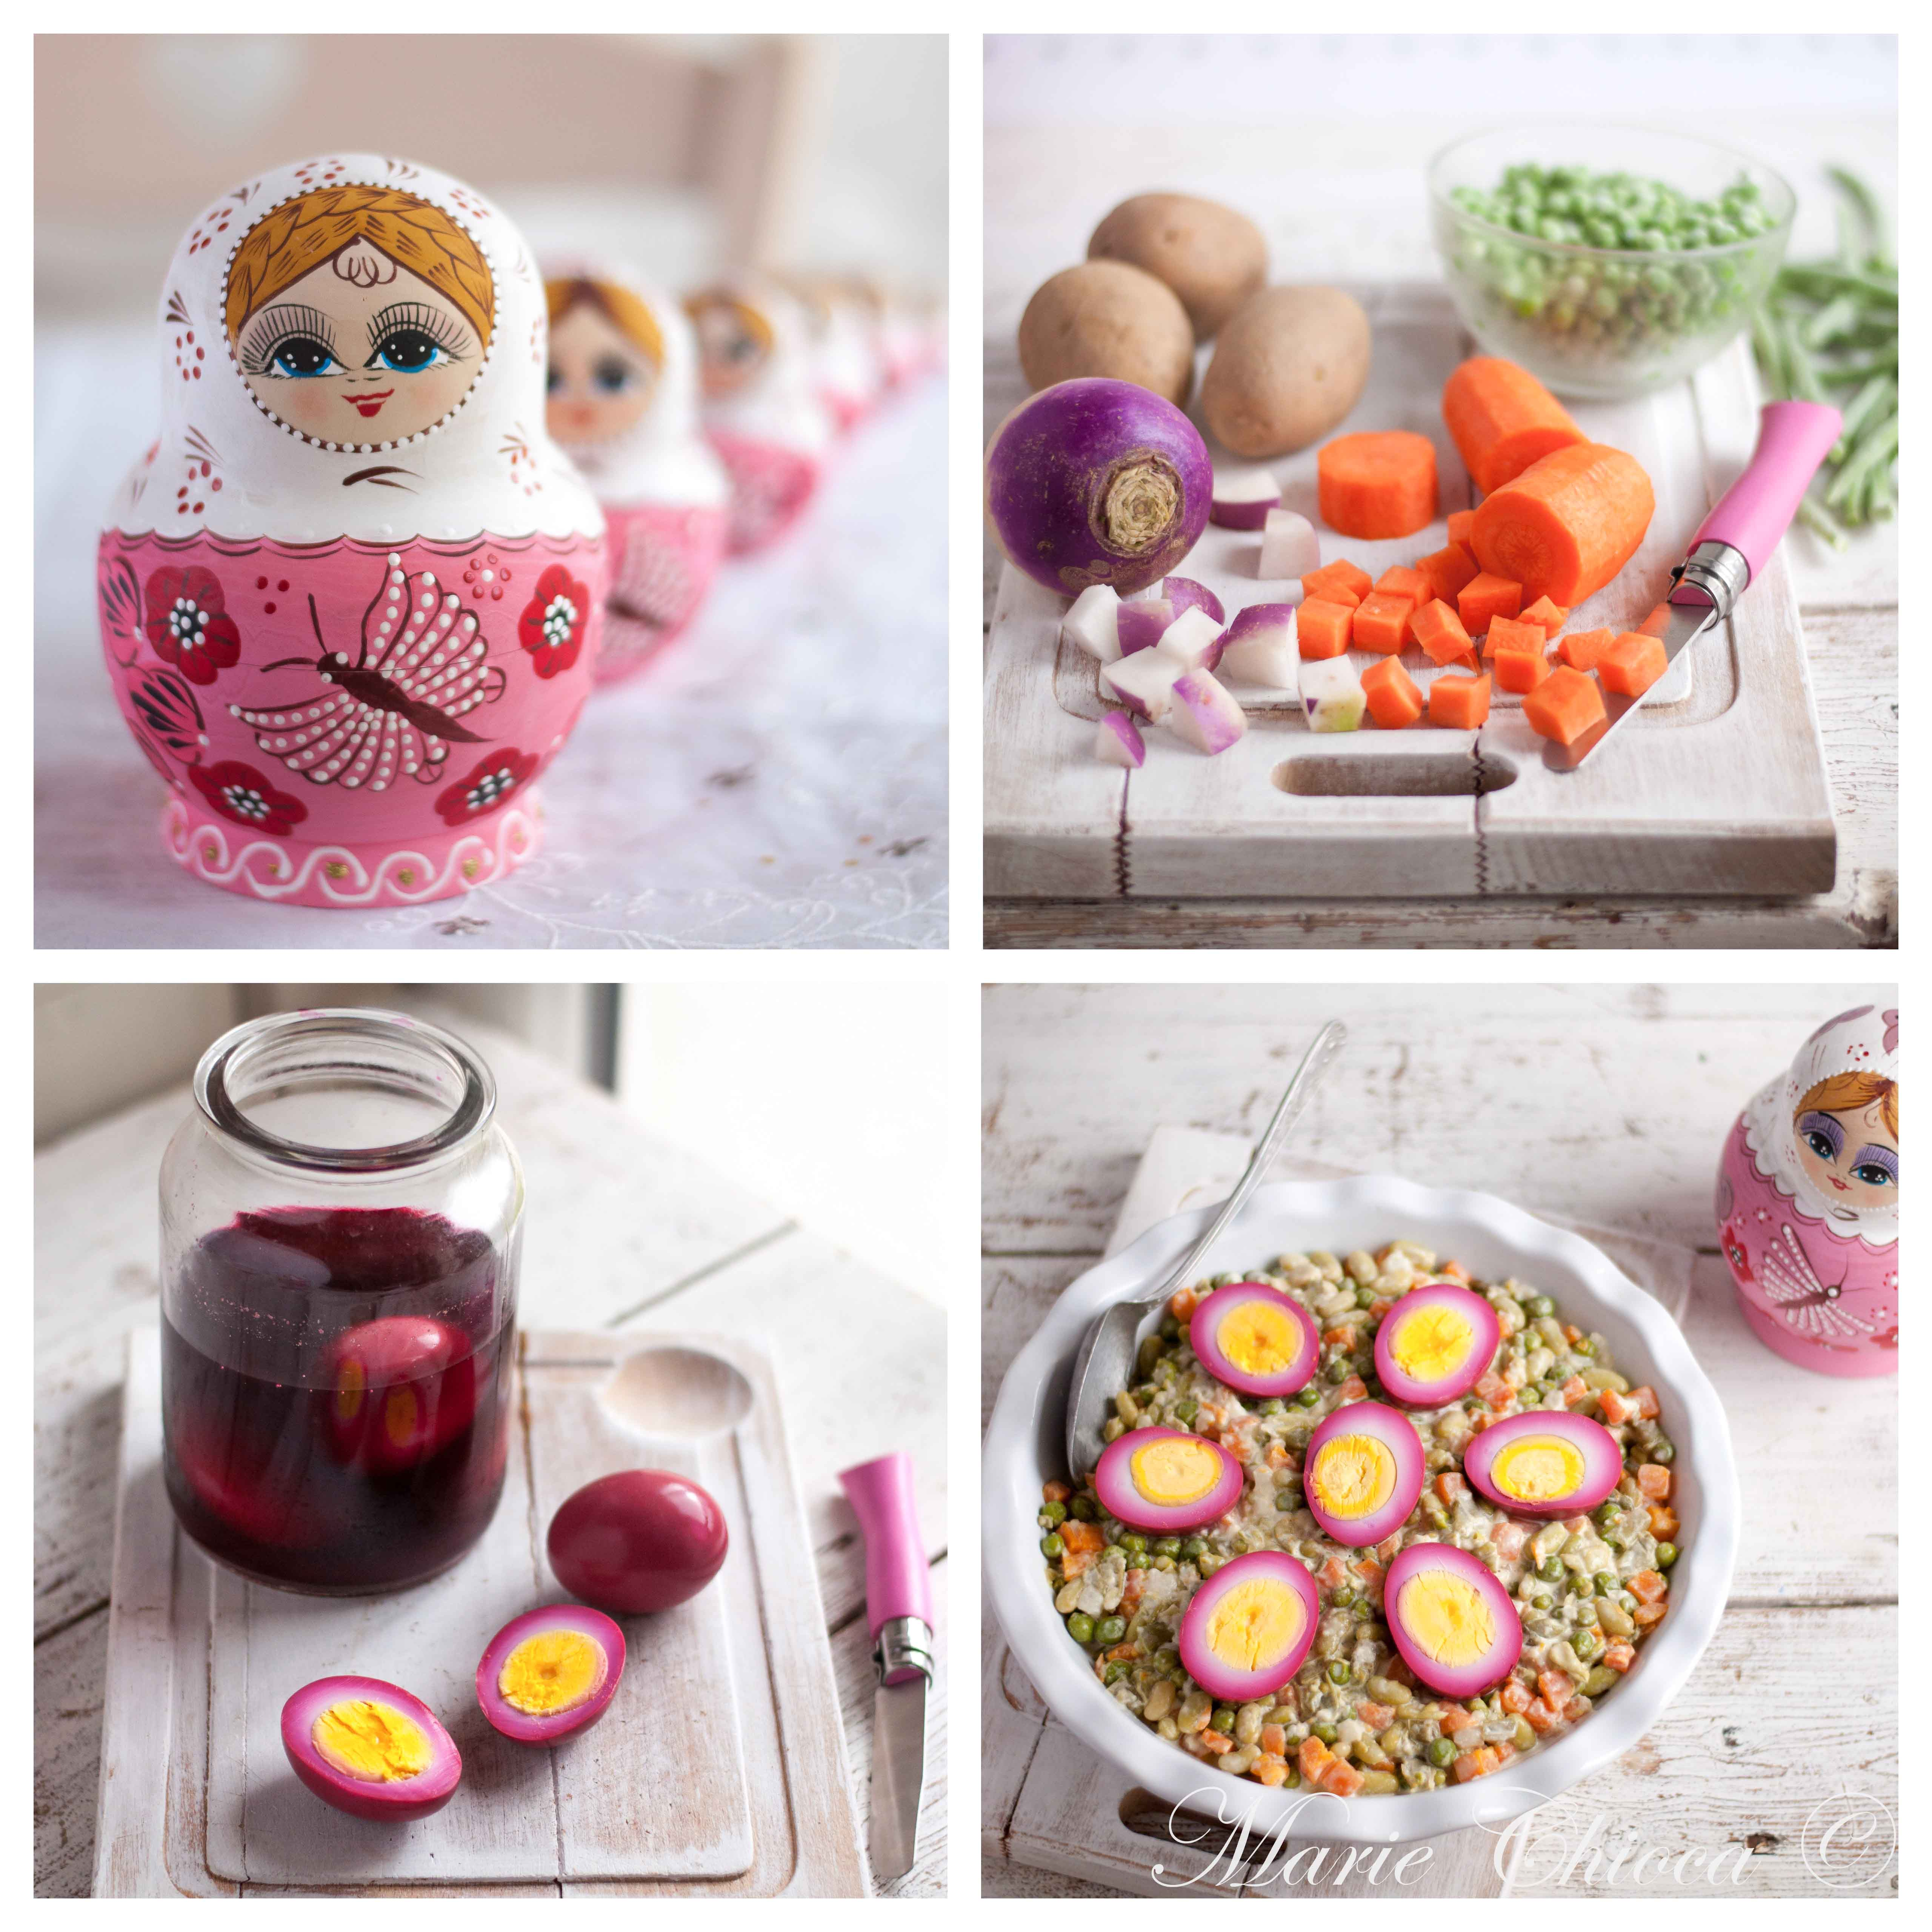 9-salade-russe-aux-oeufs-roses